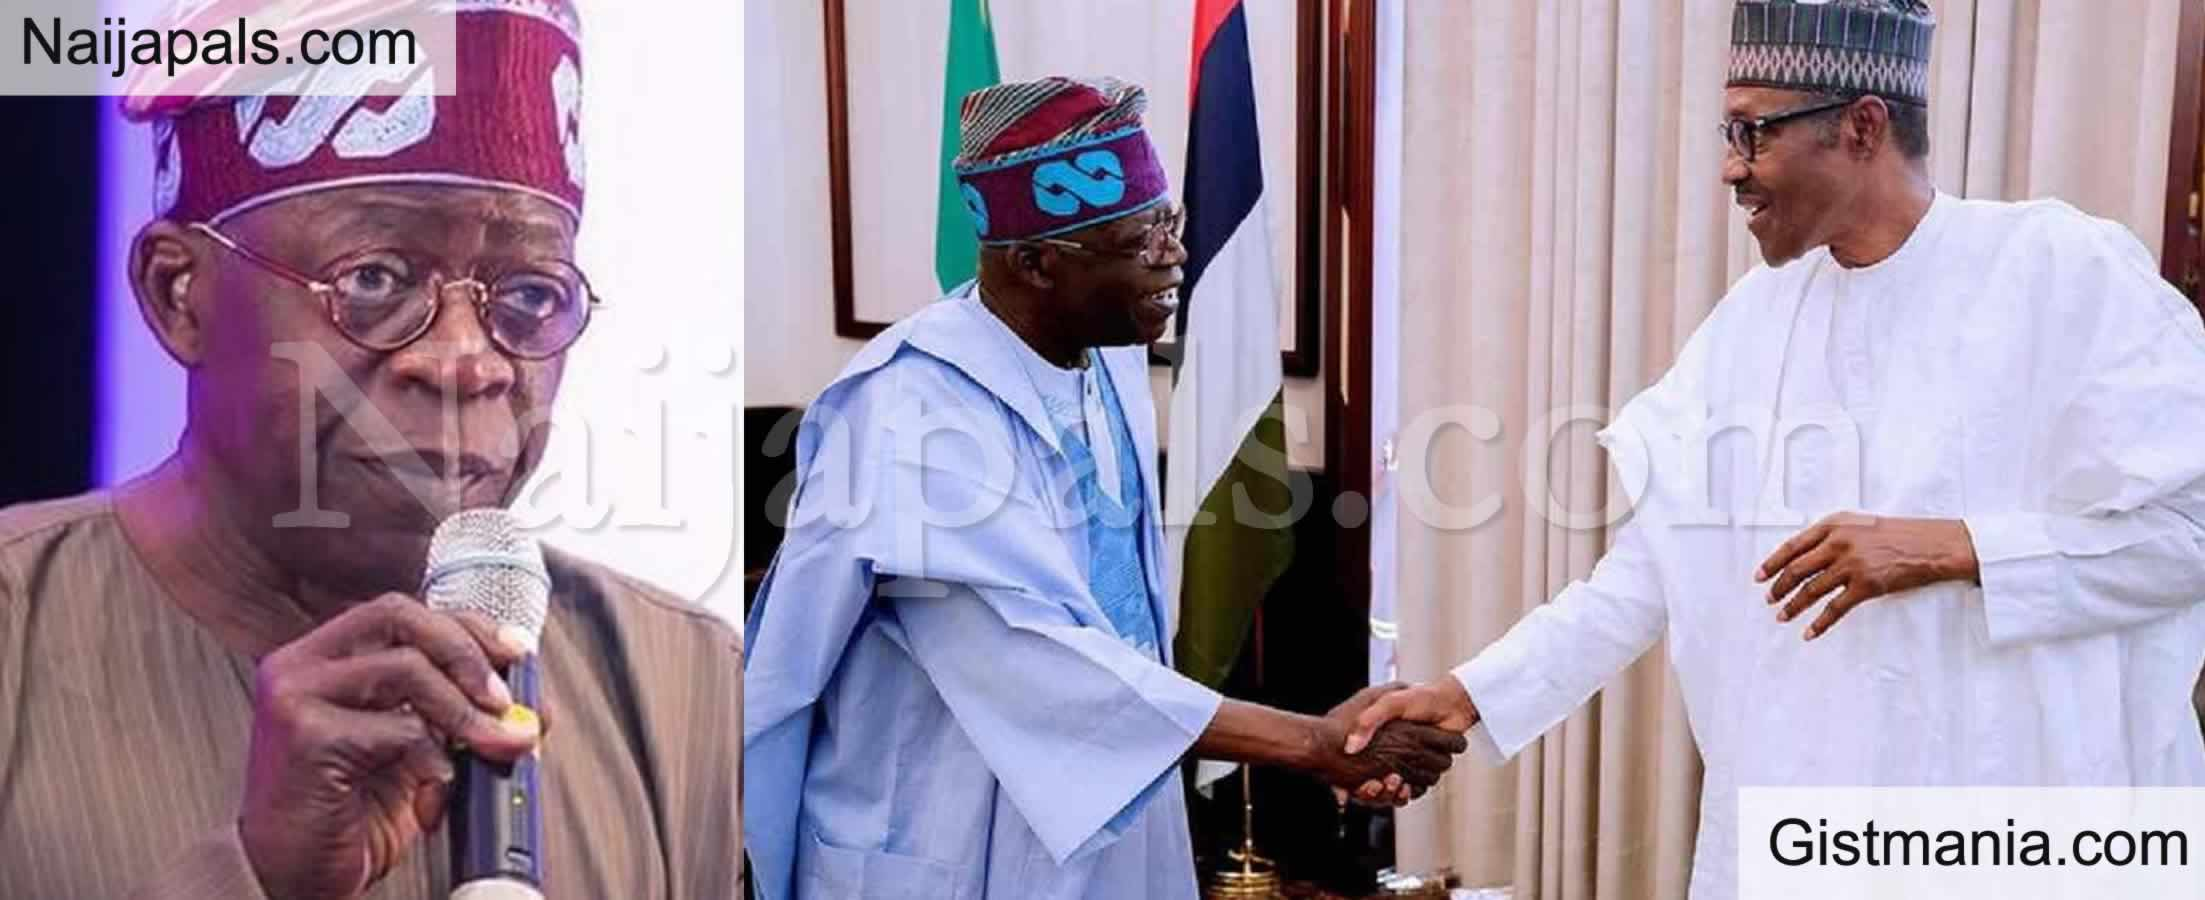 <img alt='.' class='lazyload' data-src='https://img.gistmania.com/emot/comment.gif' /> <b>Place Tinubu On Security Watch Now - Aso Rock Cabals Tell Buhari</b>